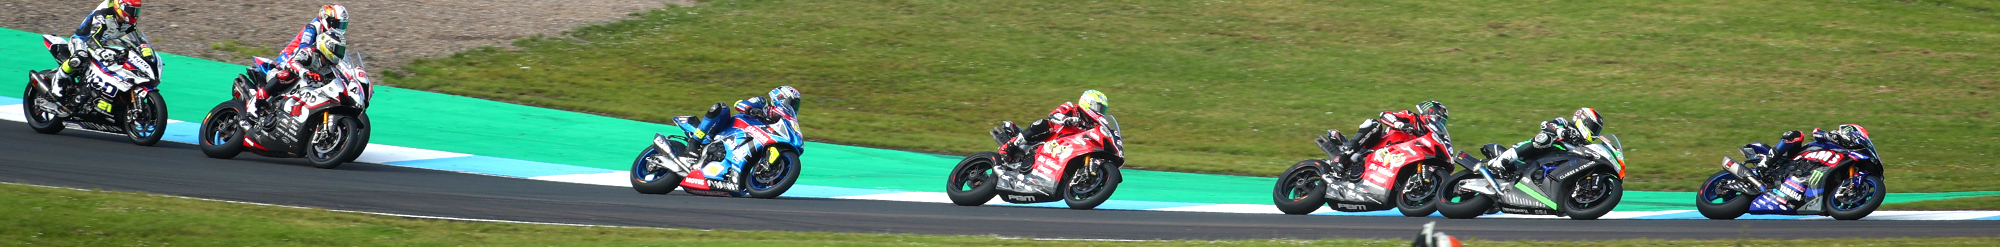 Rory the racer: Skinner exceeds expectation at Knockhill